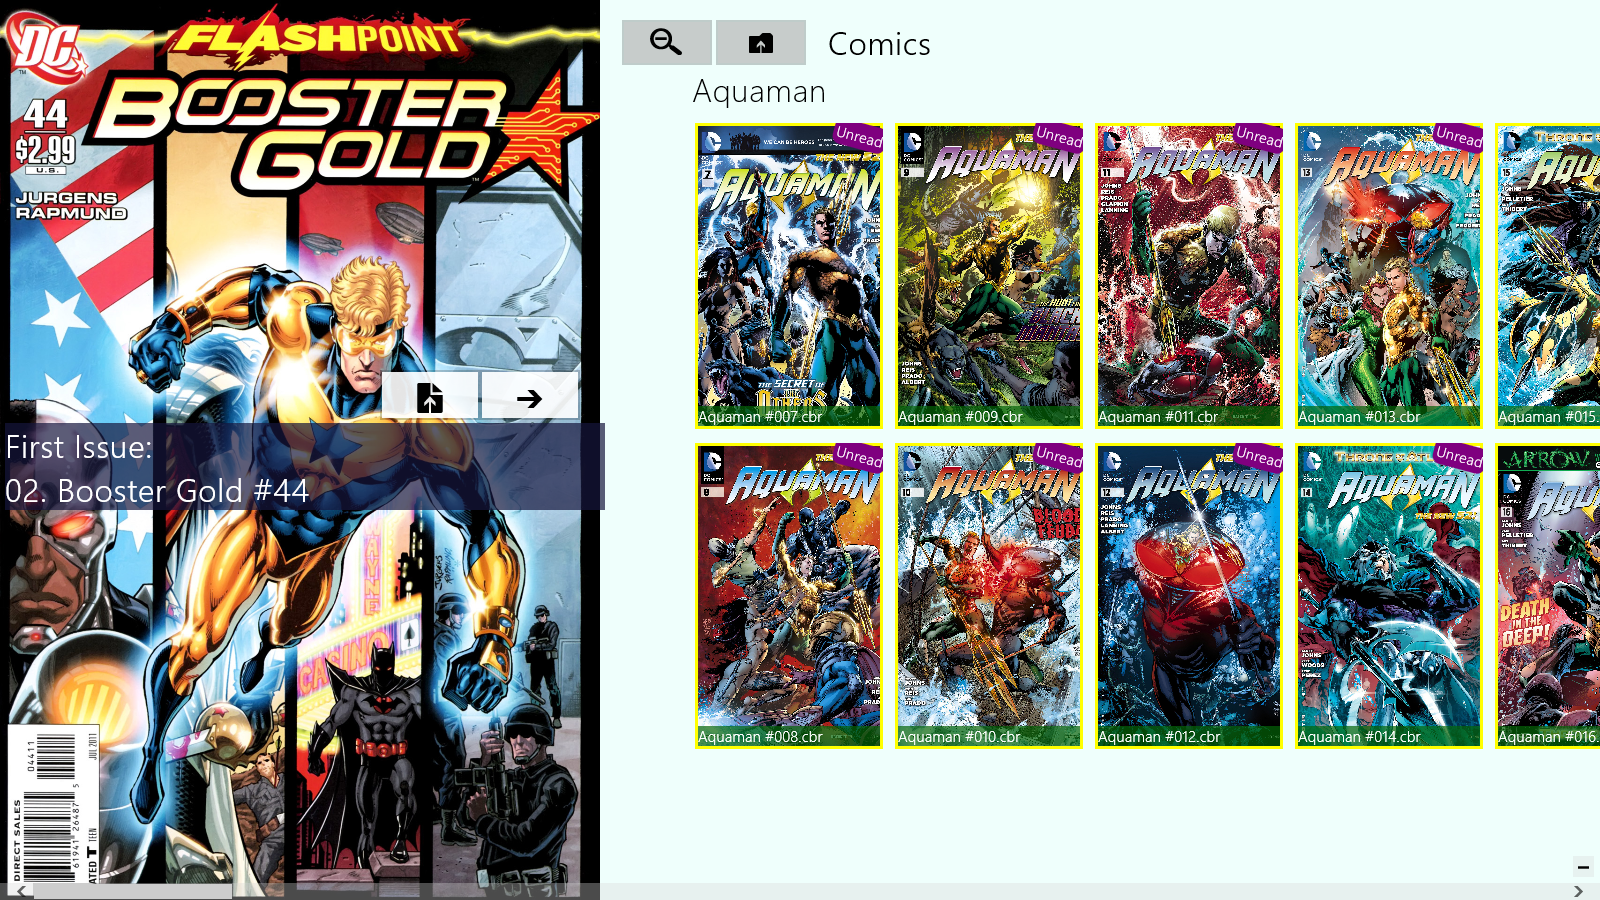 Reading Comics on the Surface, Windows 8 and Windows Phone